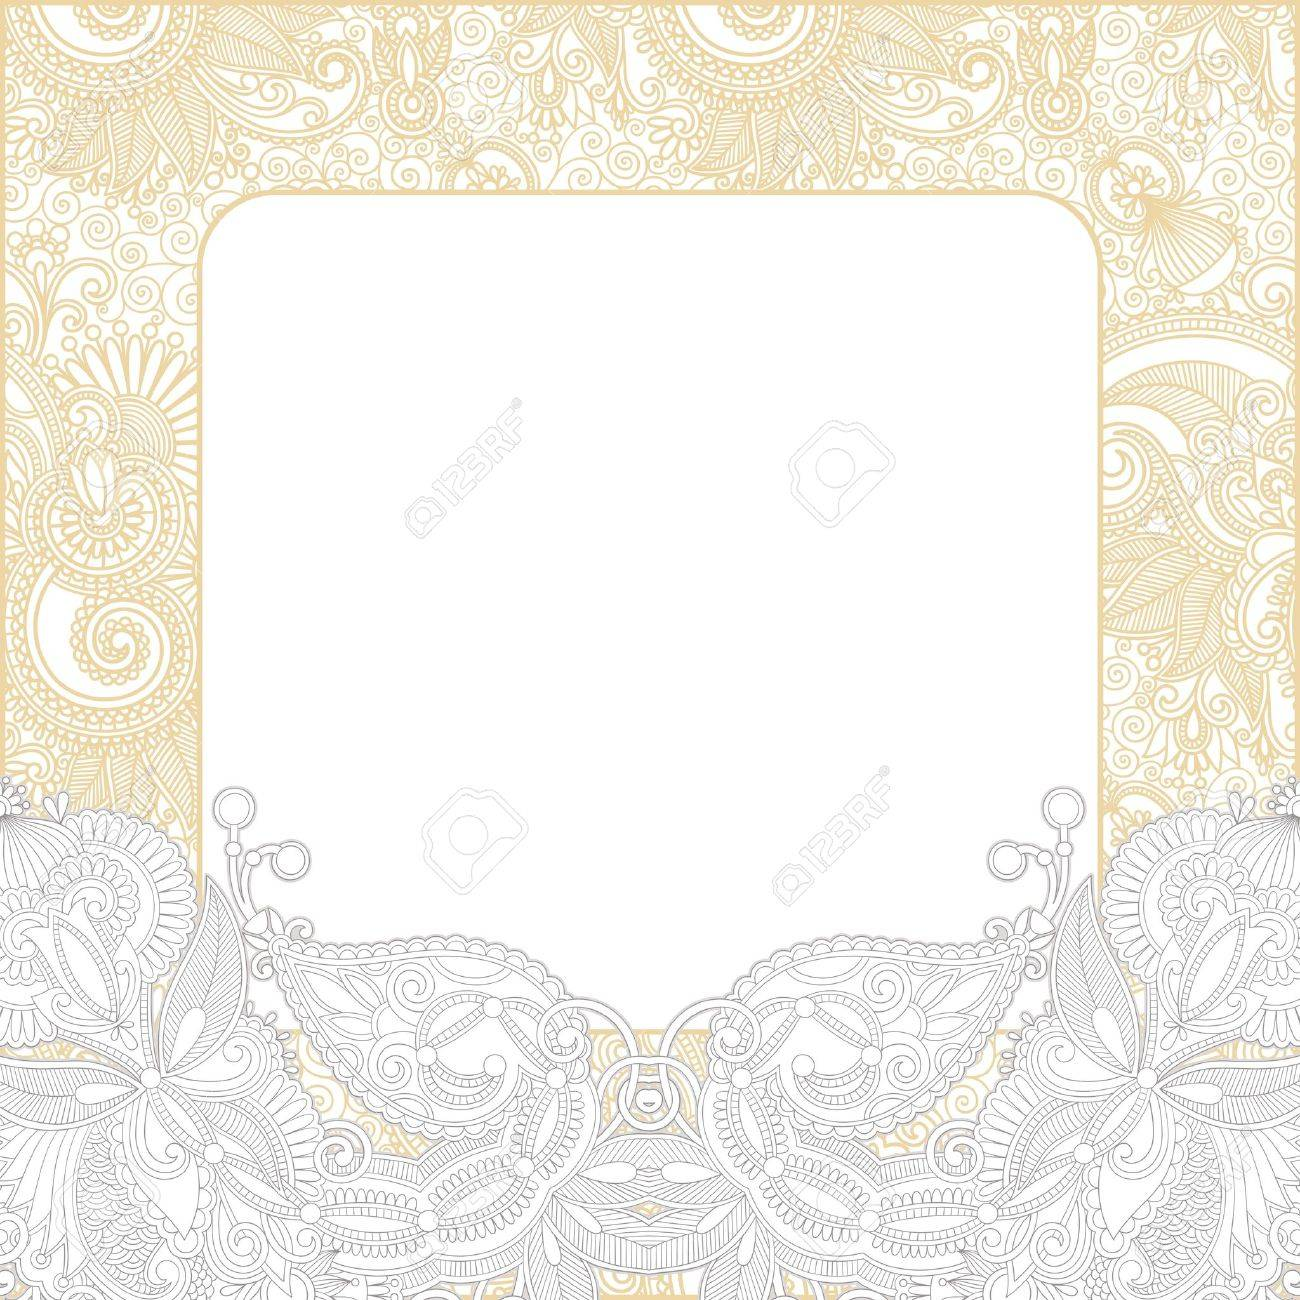 Ornate Floral Background Invitation To The Wedding Or Announcement ...